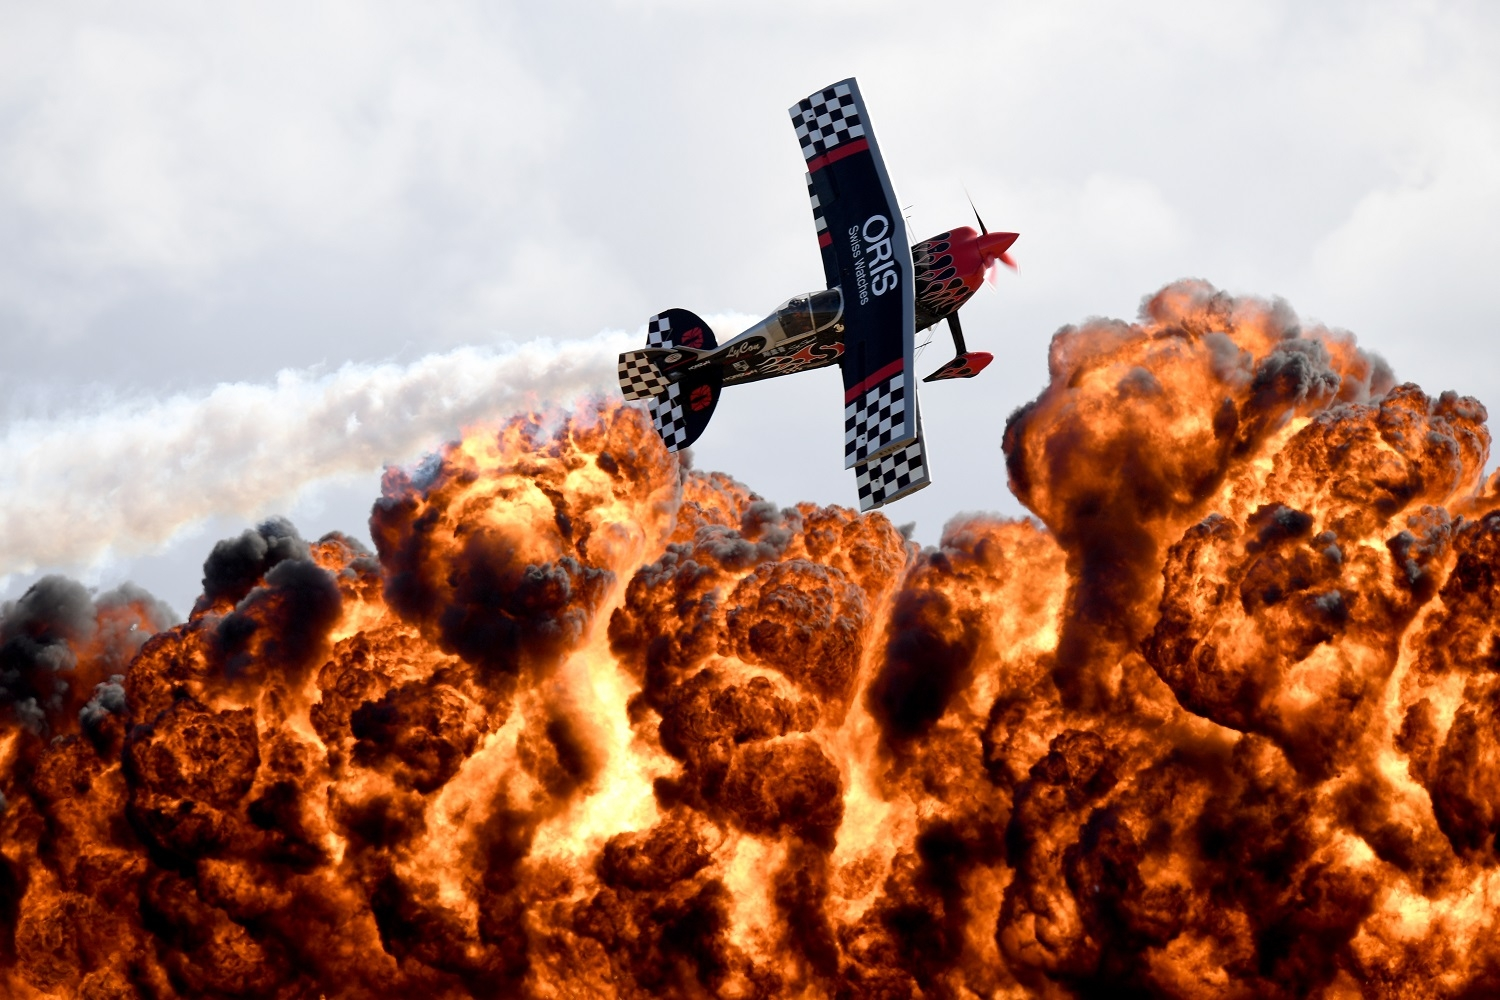 A member of the Tinstix of Dynamite aerobatics team flies in front of a wall of fire during the Australian International Airshow in Melbourne on March 5, 2017.